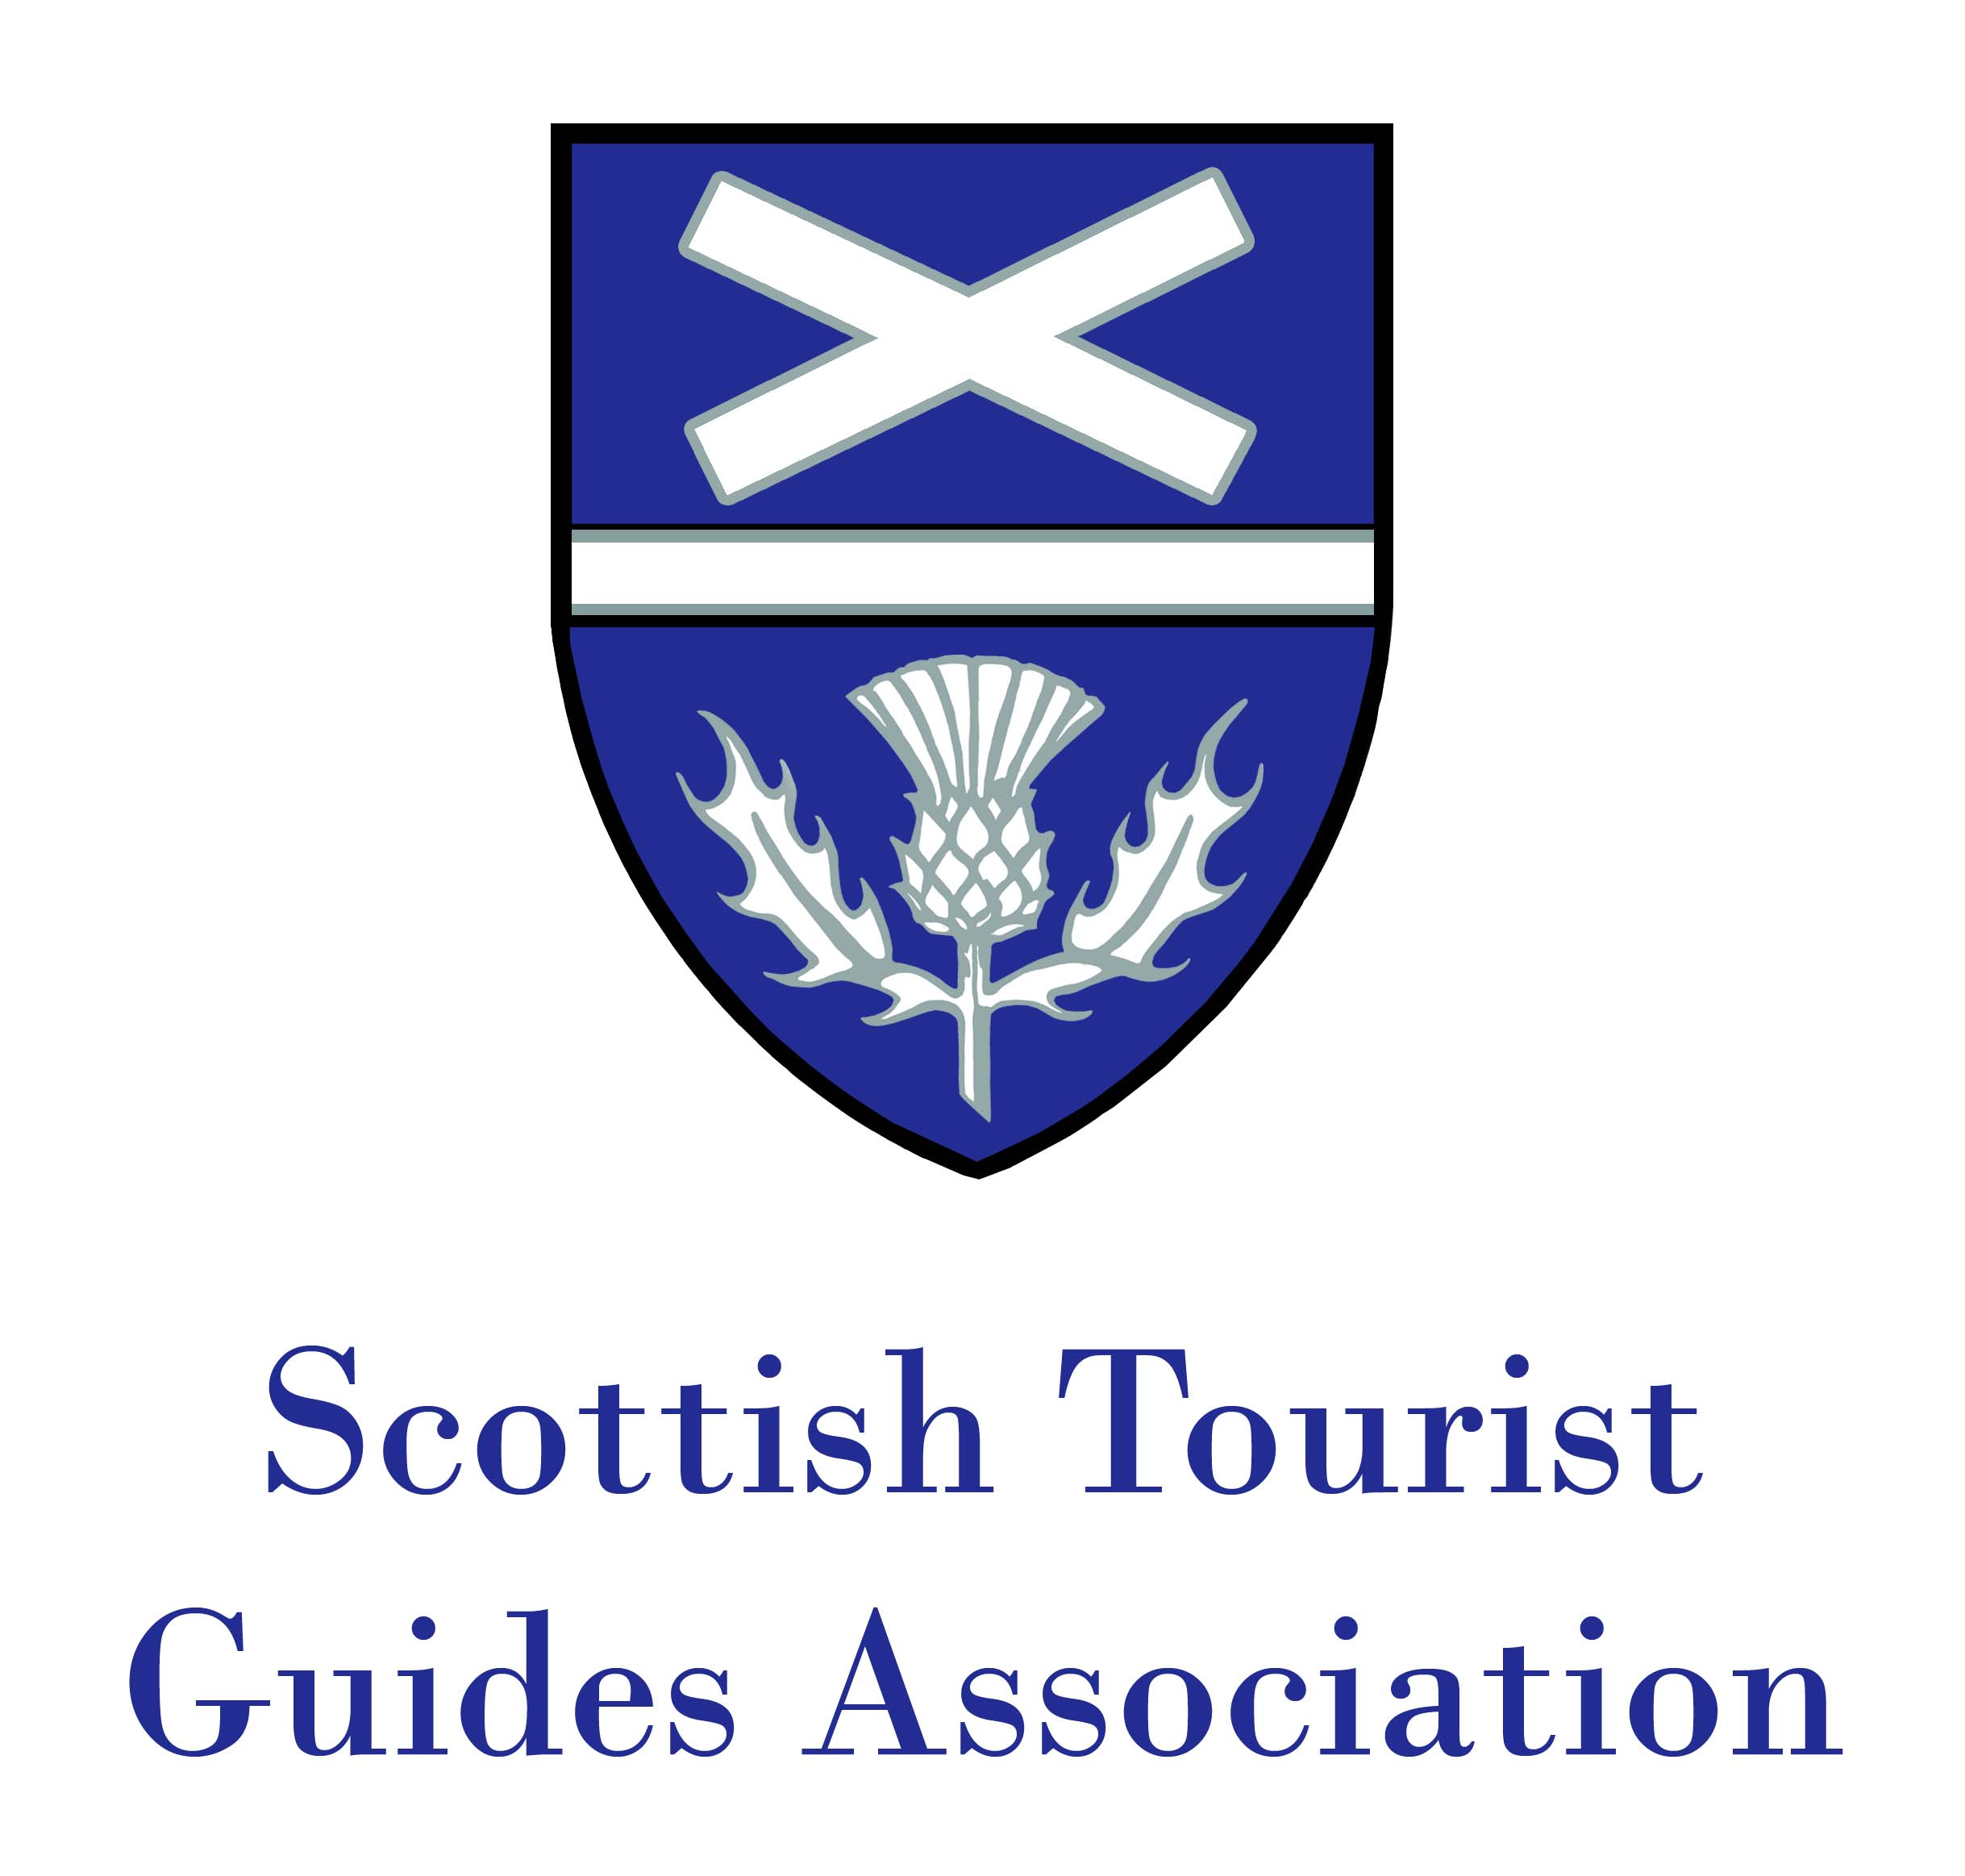 Scottish Tourist Guides Association | Quality Bespoke Tours in Scotland